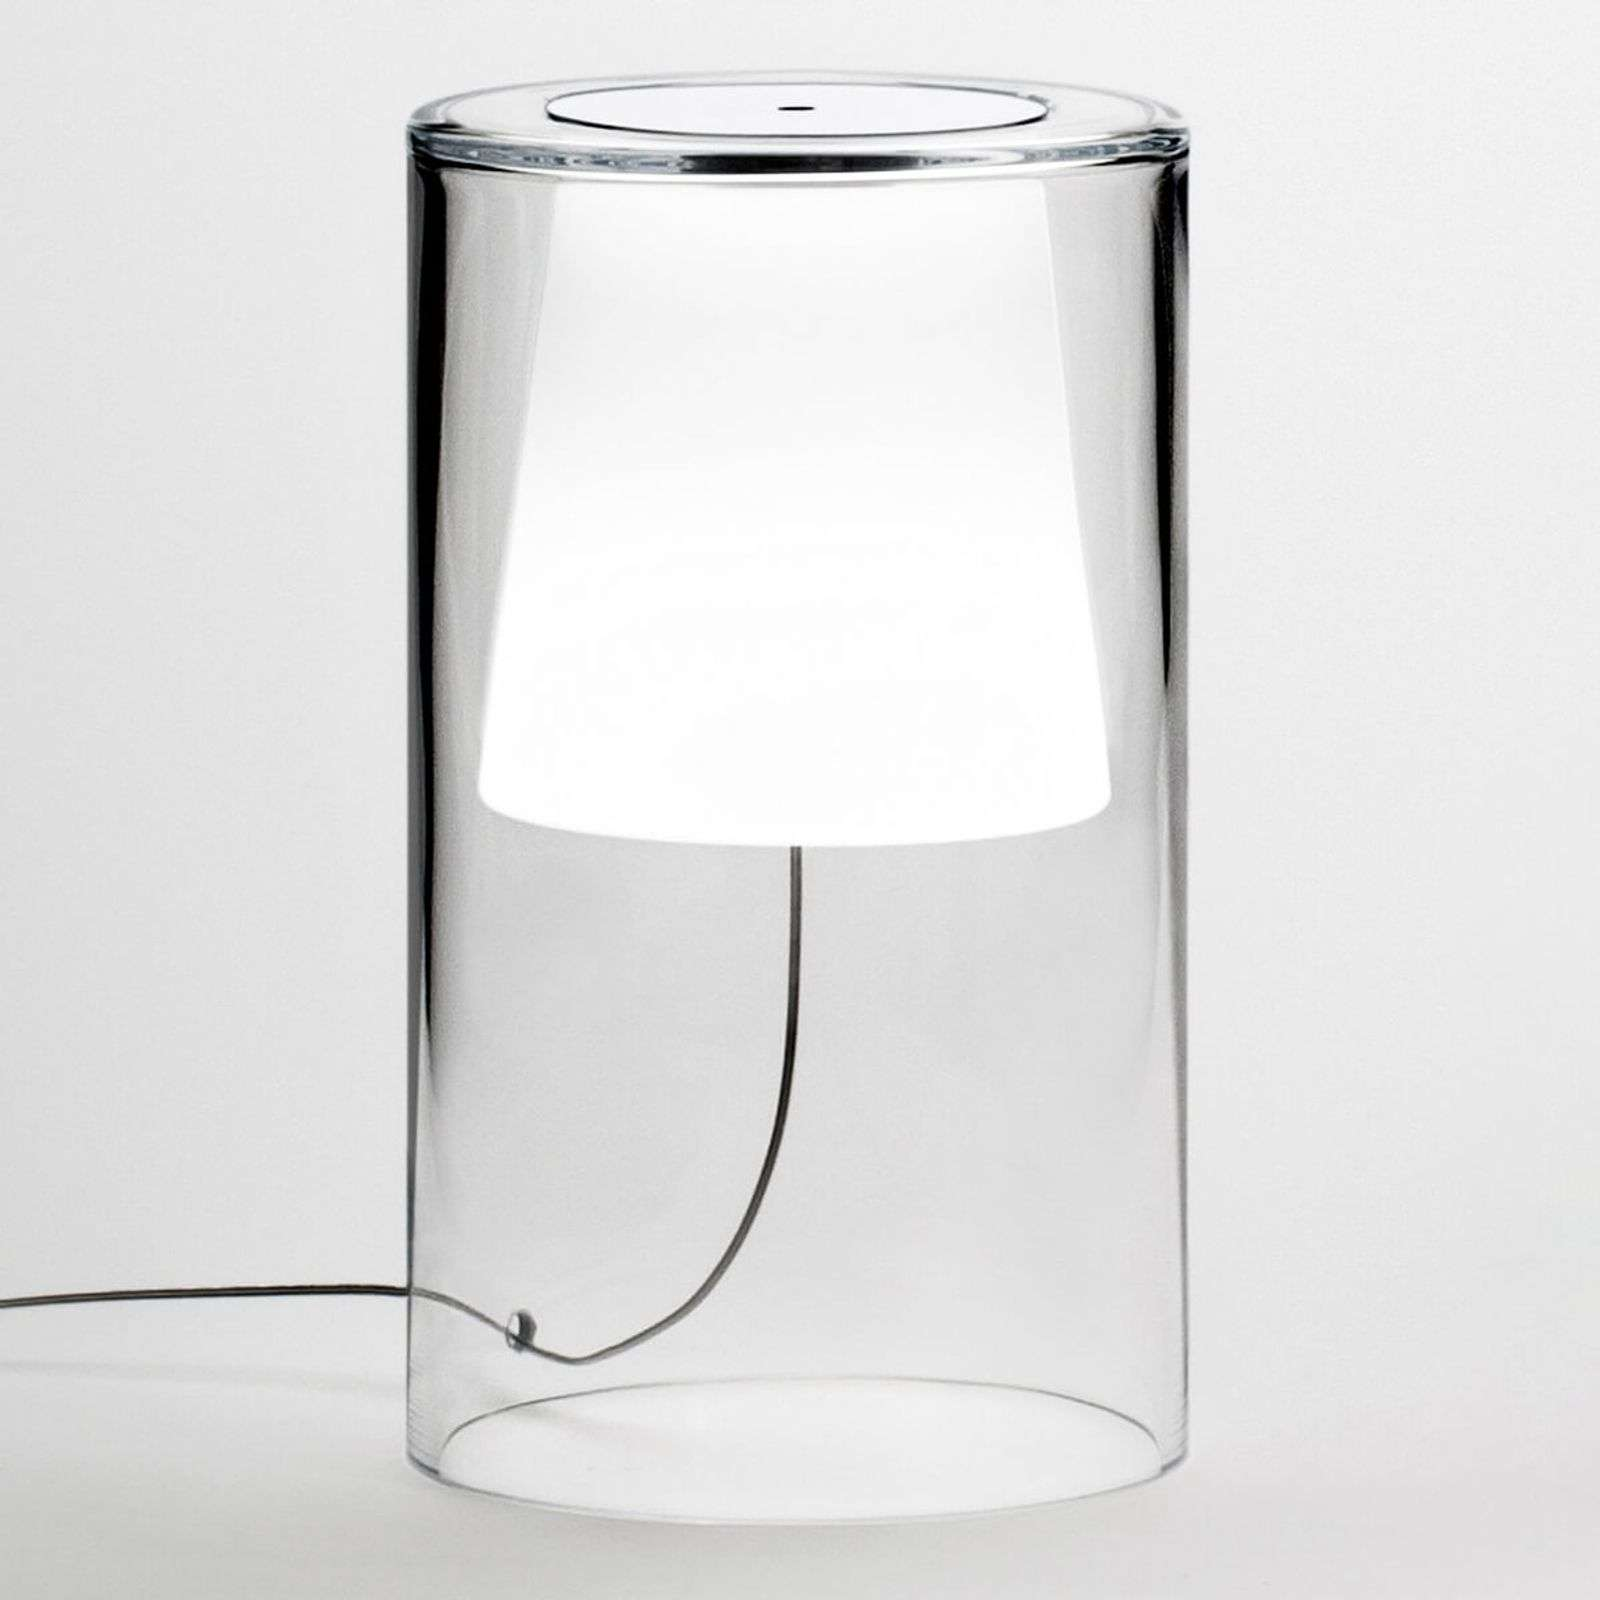 Lampe à poser design Join, dimmable, verre soufflé